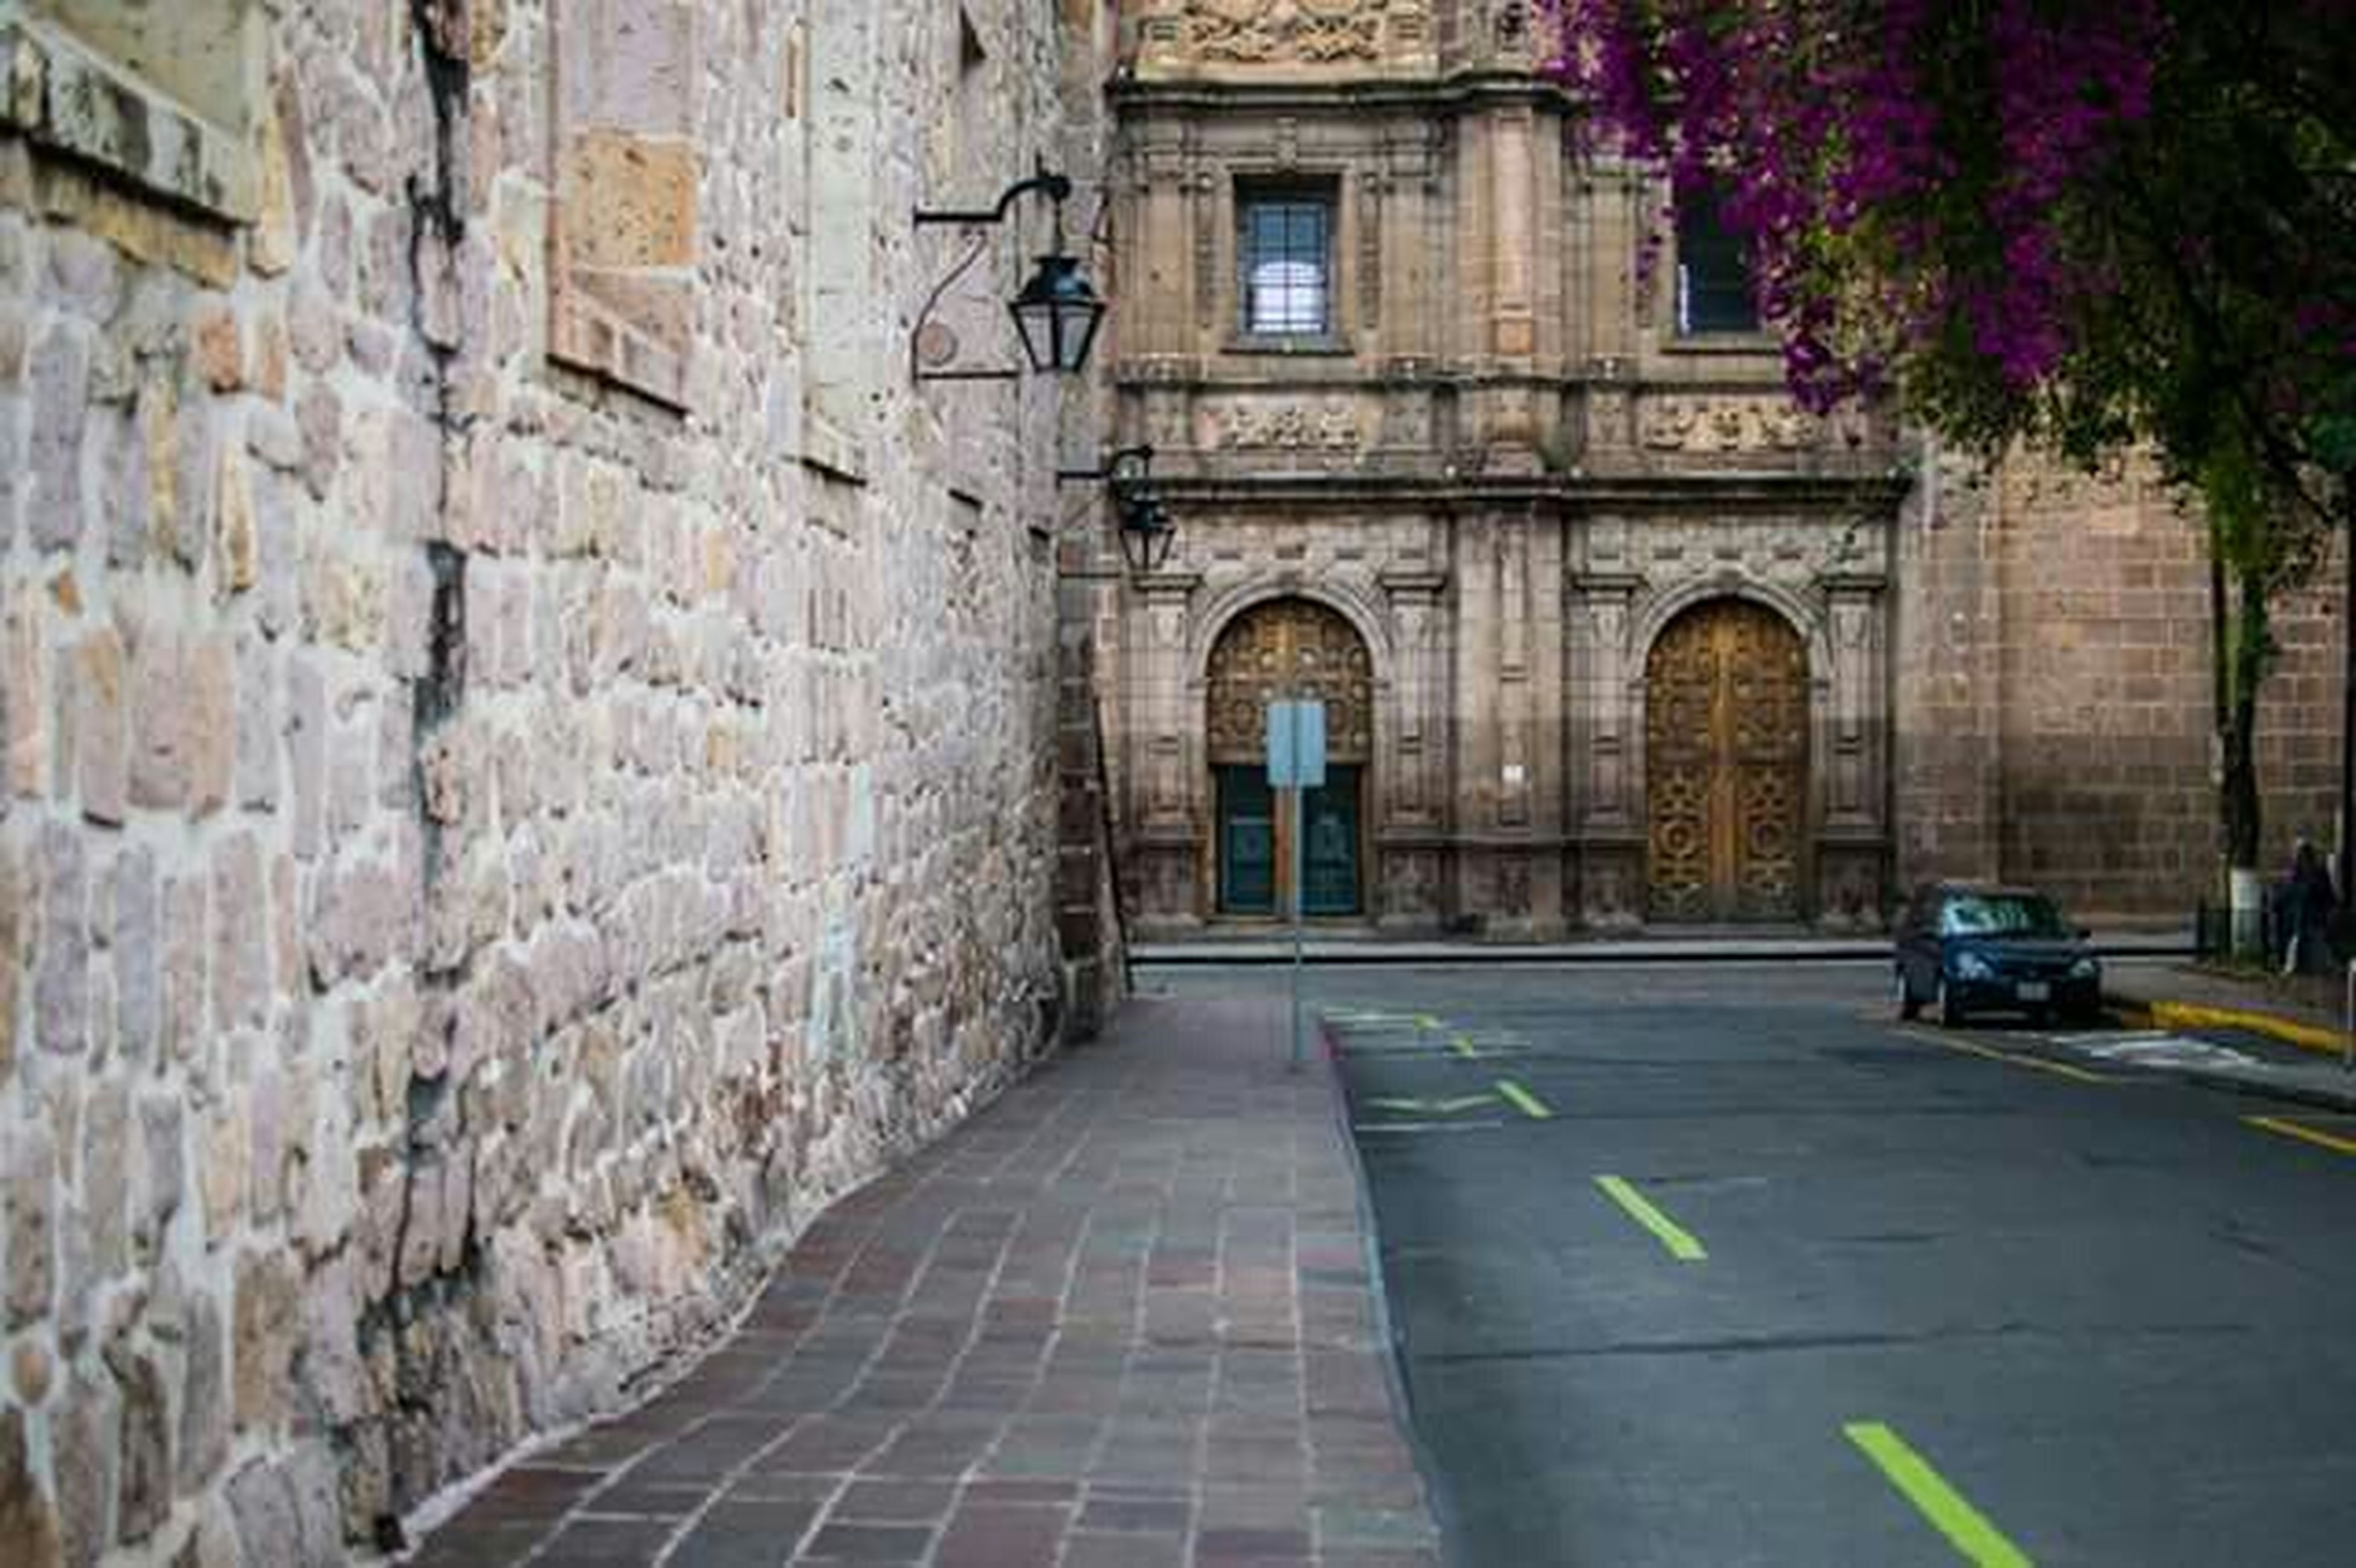 architecture, built structure, the way forward, building exterior, street, transportation, road, diminishing perspective, arch, empty, city, cobblestone, building, road marking, vanishing point, narrow, alley, outdoors, day, car